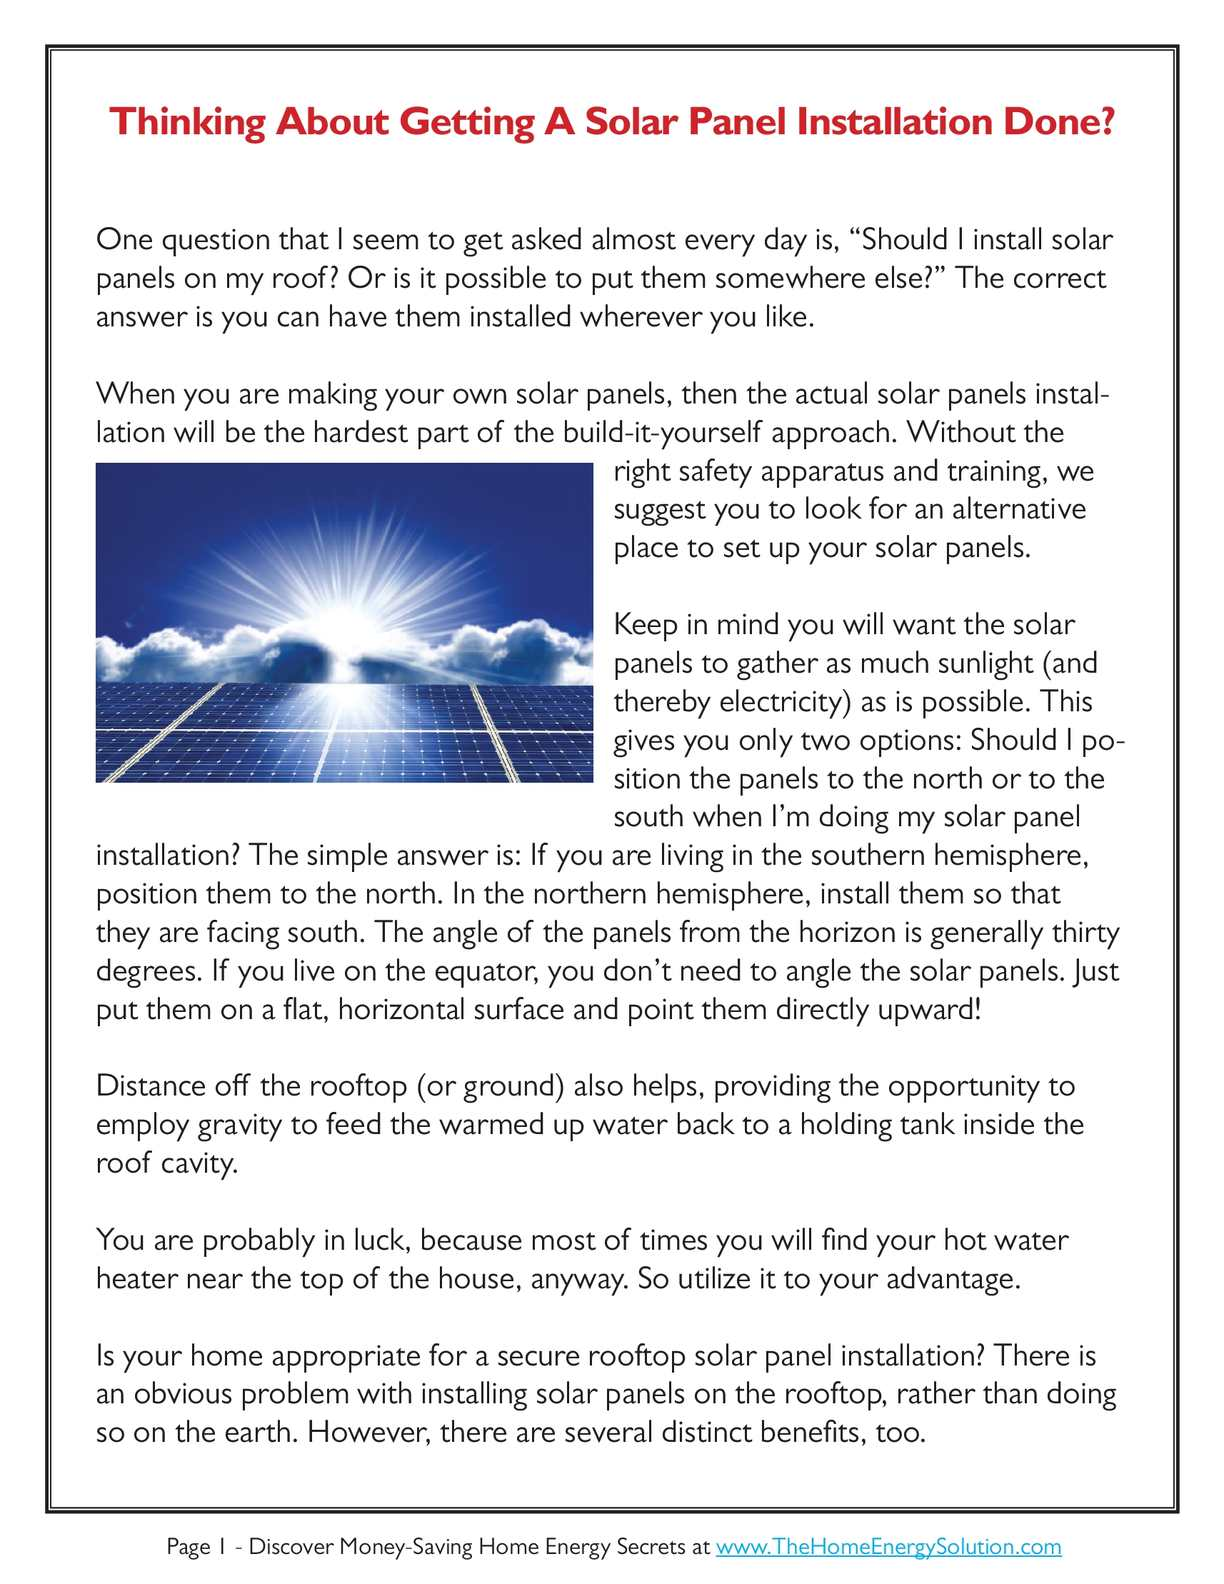 Calaméo - Are You Thinking About Getting A Solar Panel